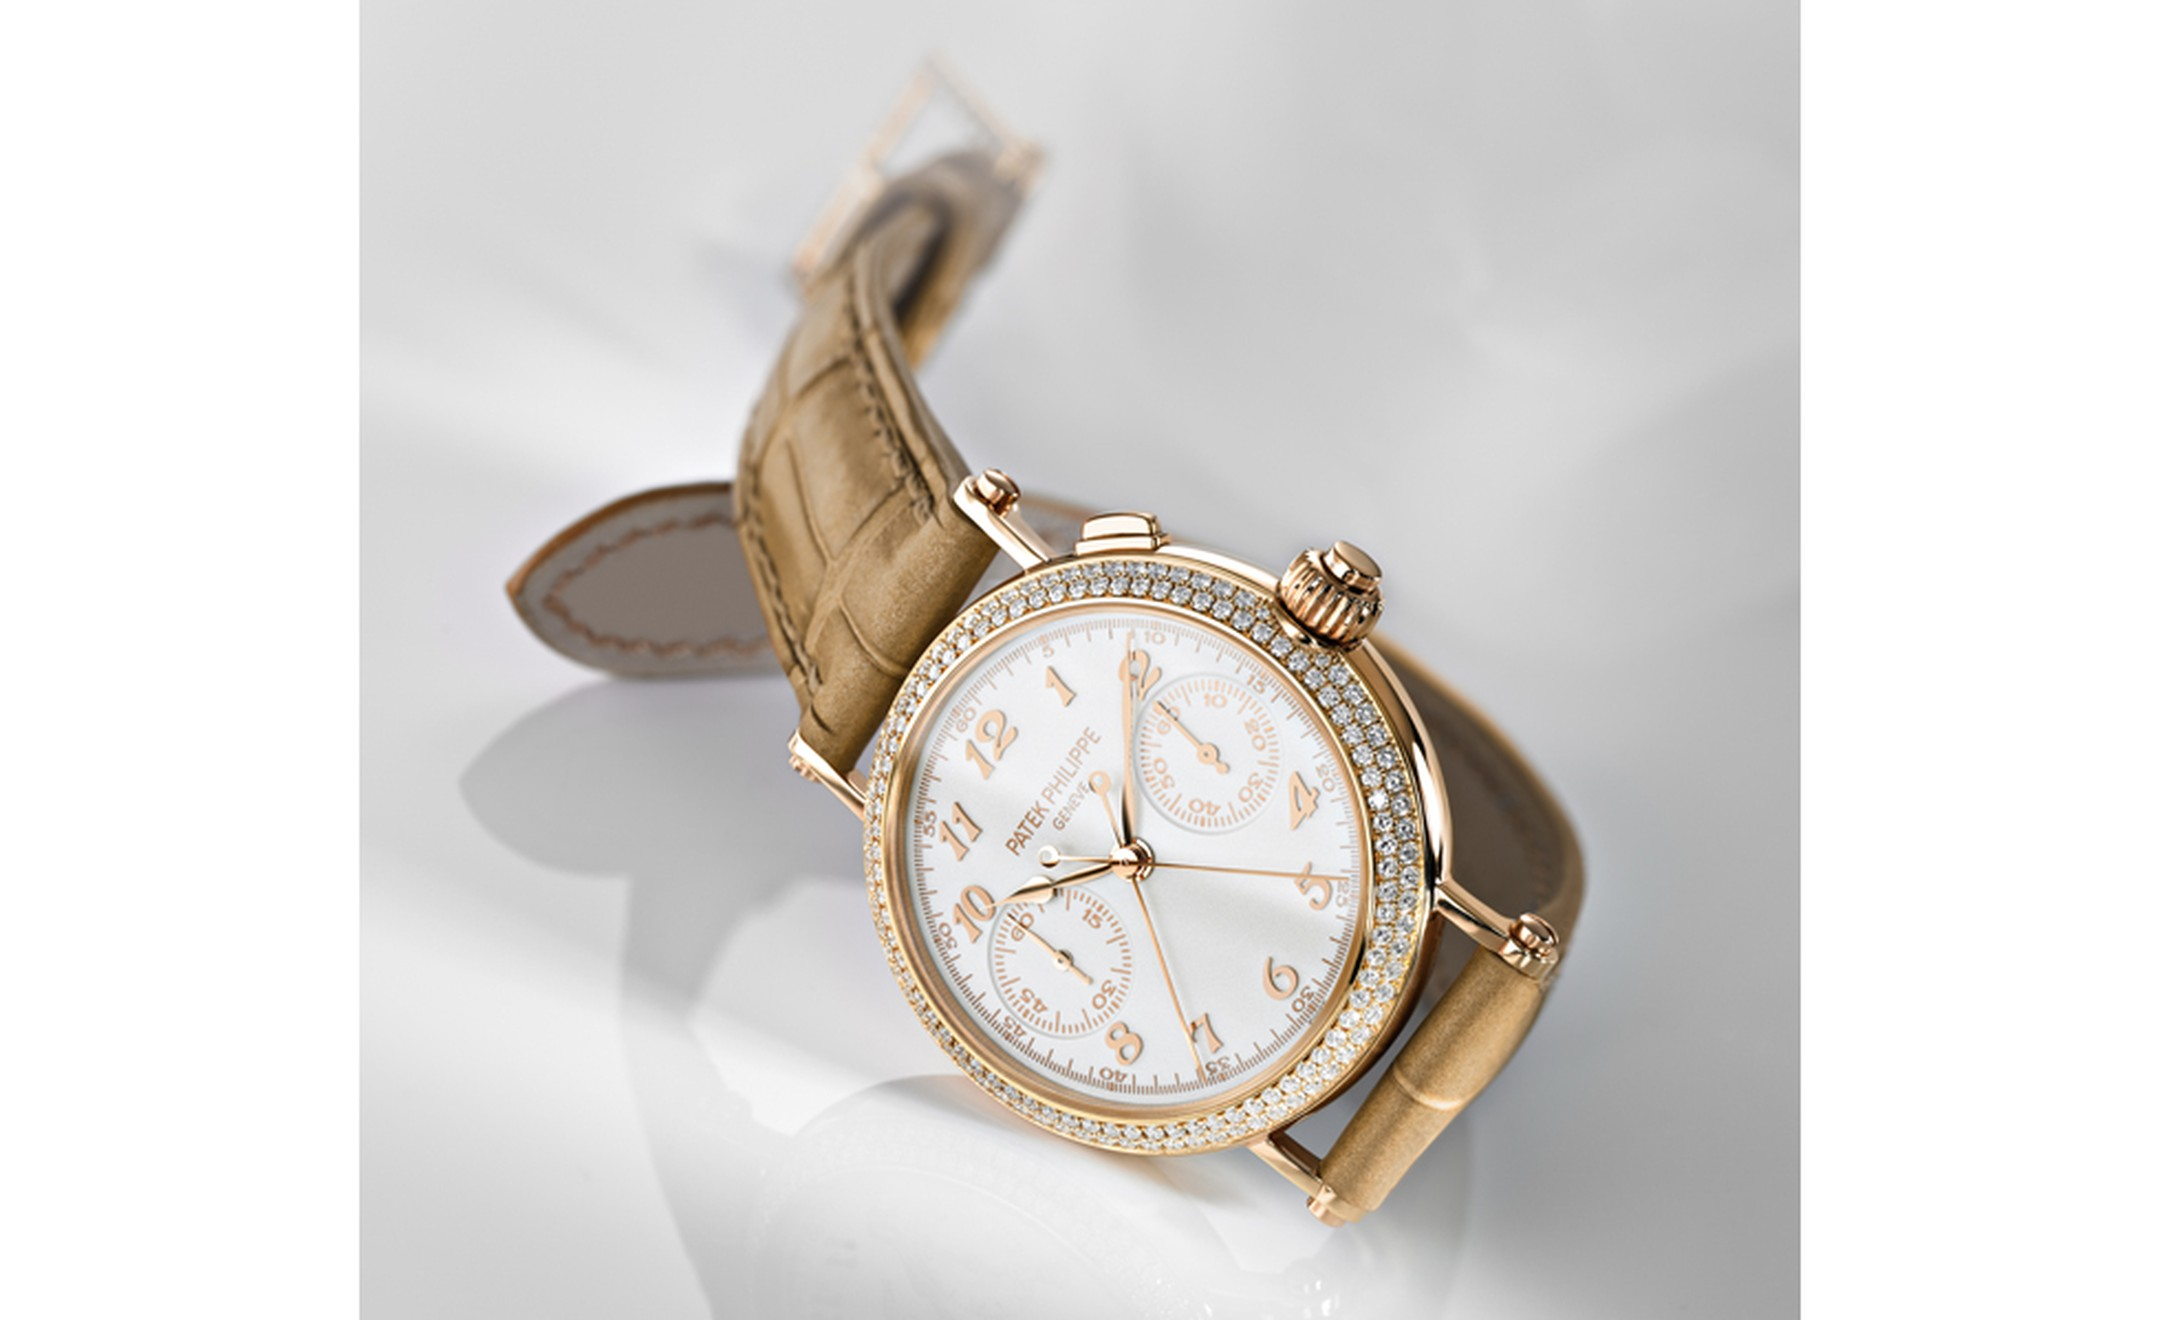 Patek Philippe ladies' first split seconds chronograph ref 7059, Calibre: CH R 27-525 PS in rose gold